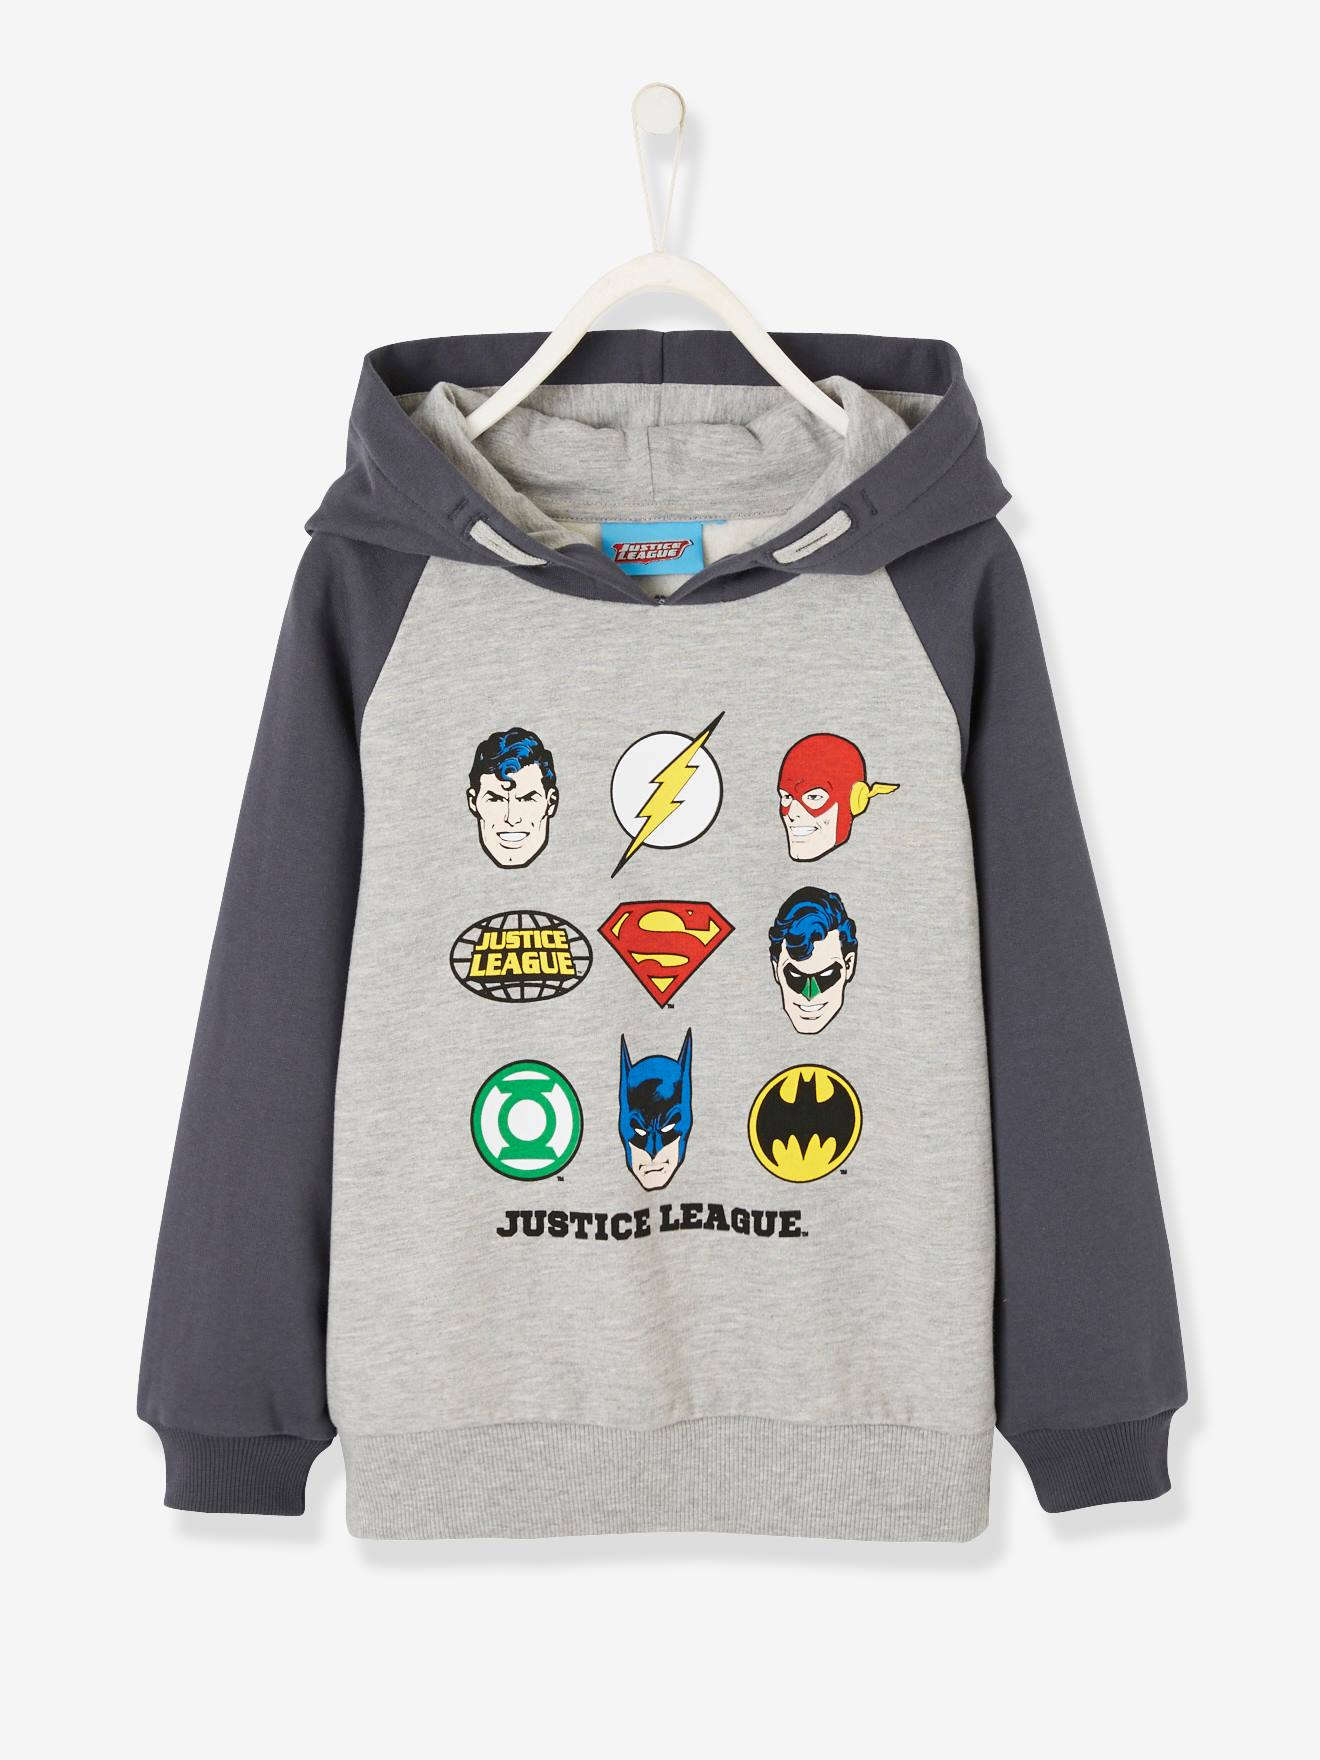 superman nursery decor.htm two tone sweatshirt with hood  for boys  justice league   grey  two tone sweatshirt with hood  for boys